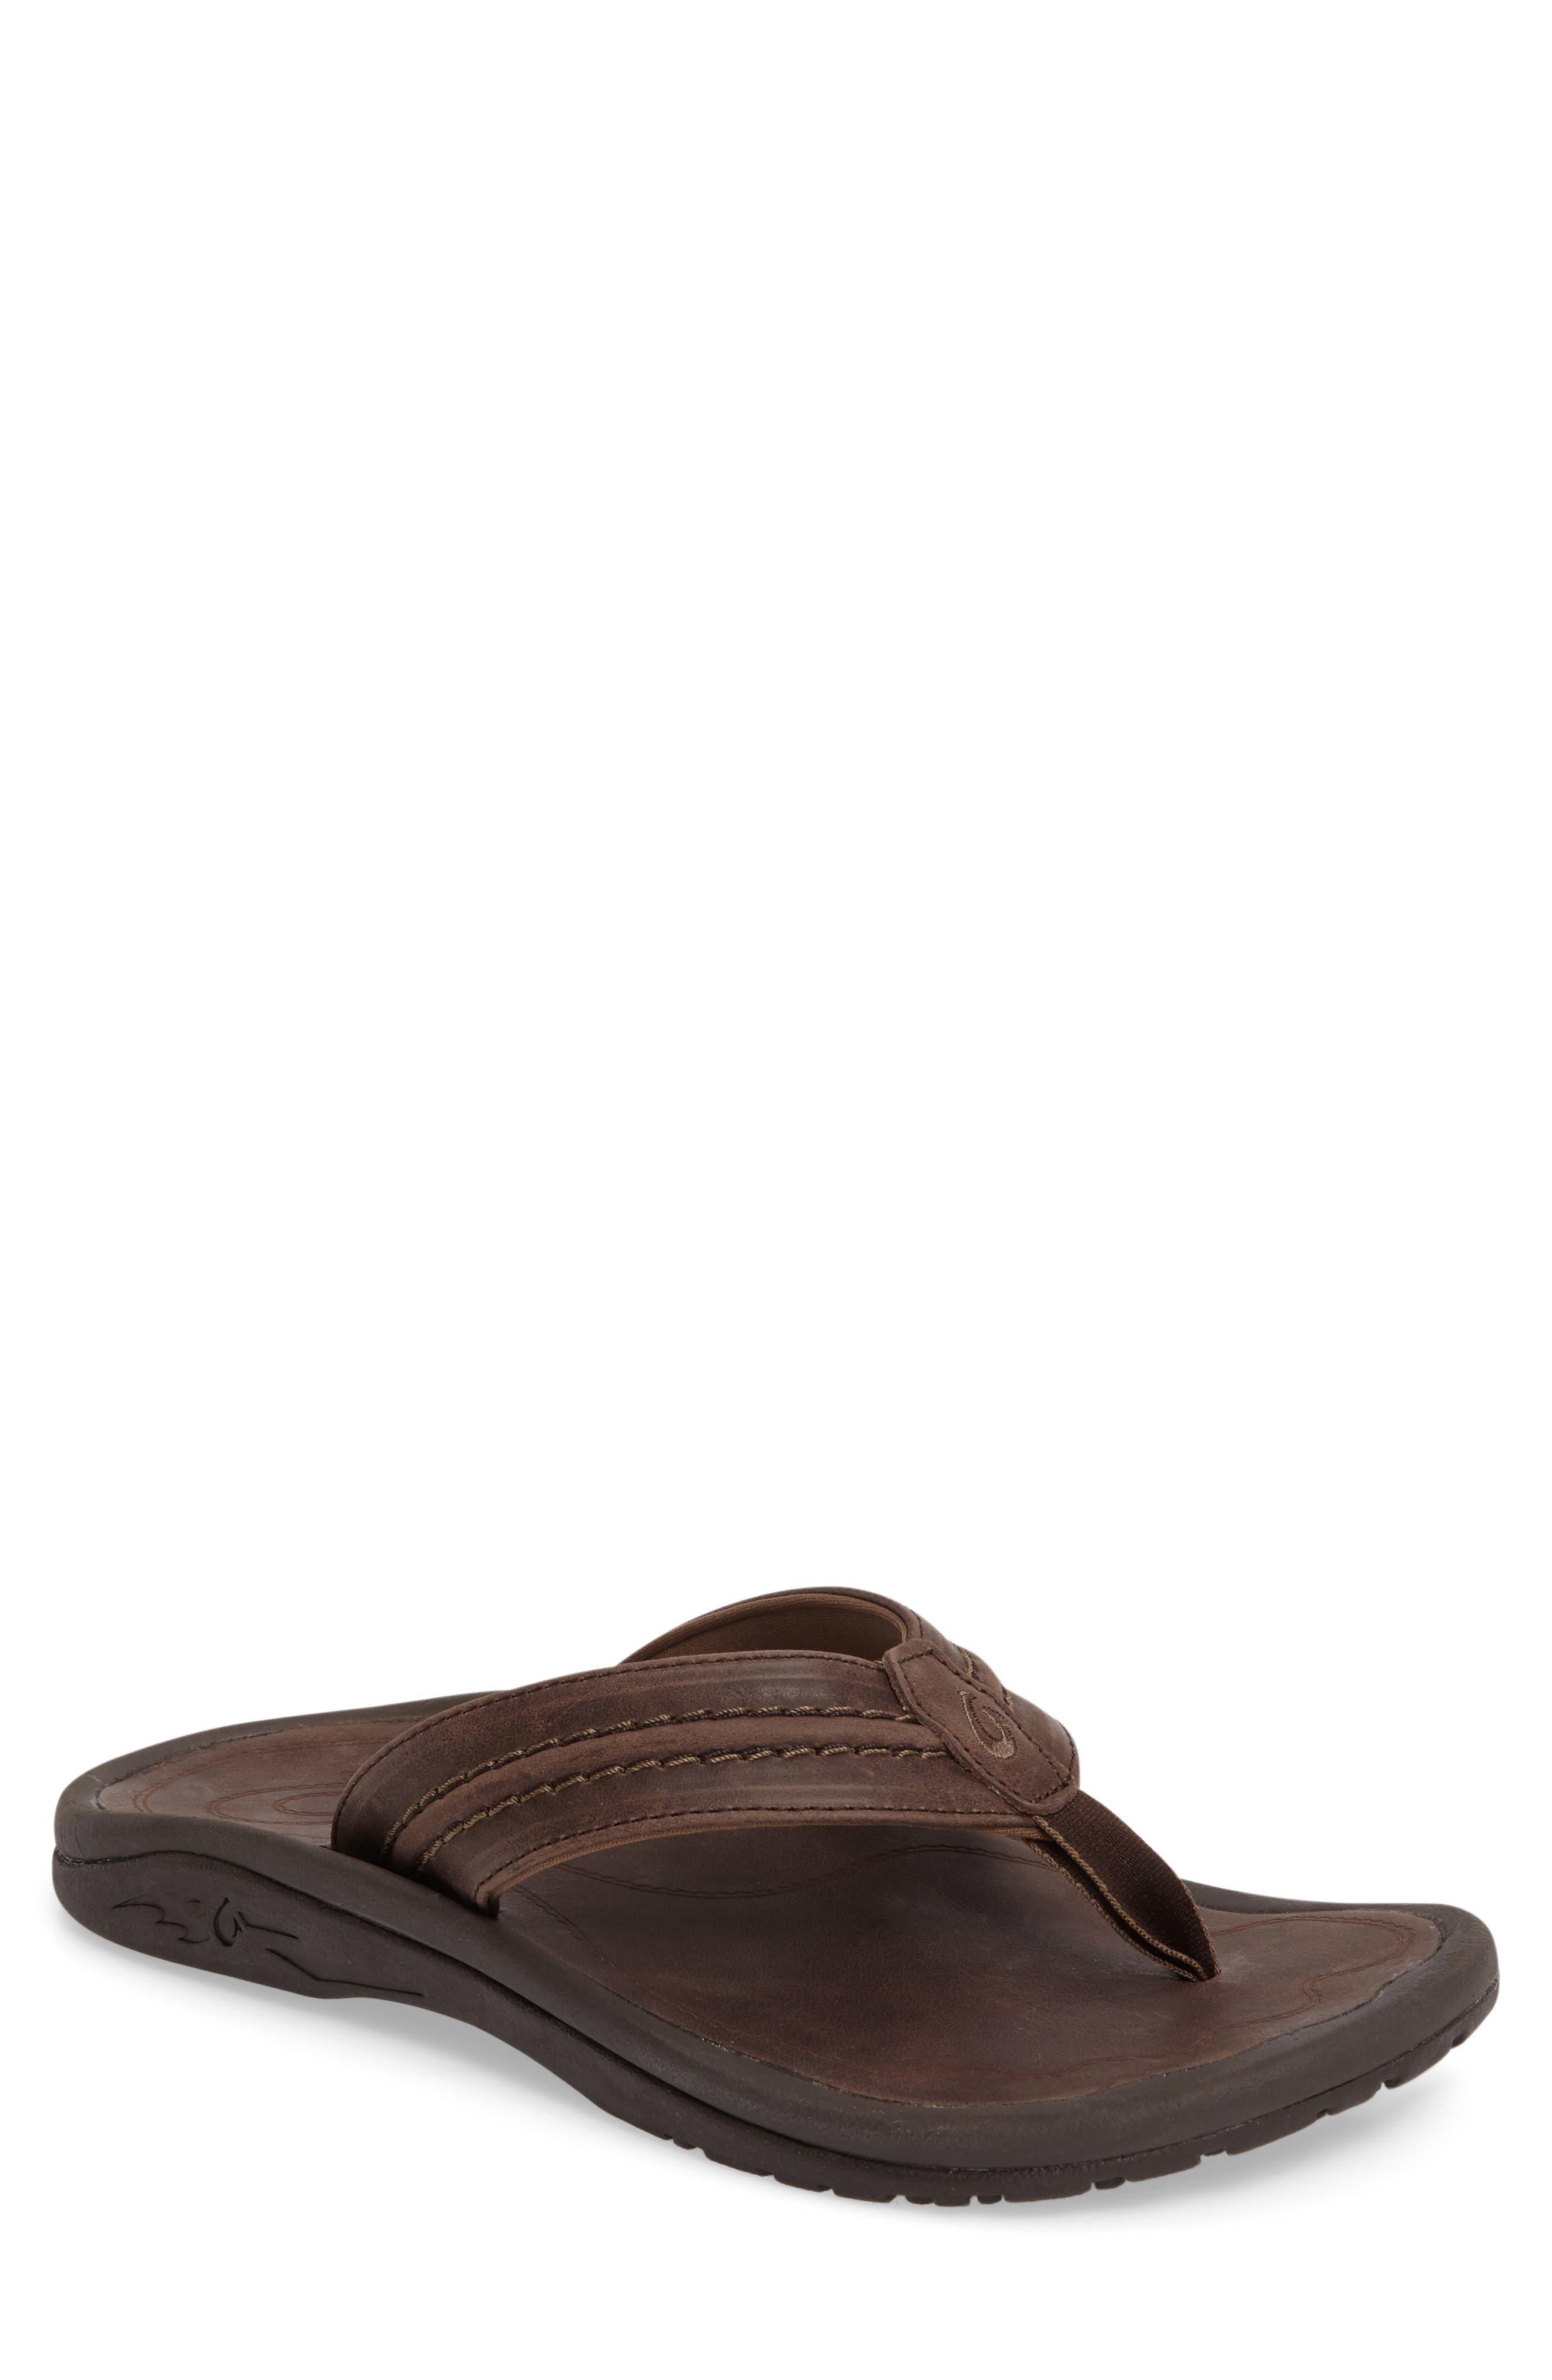 Hokua Flip Flop,                             Main thumbnail 1, color,                             DARK WOOD LEATHER